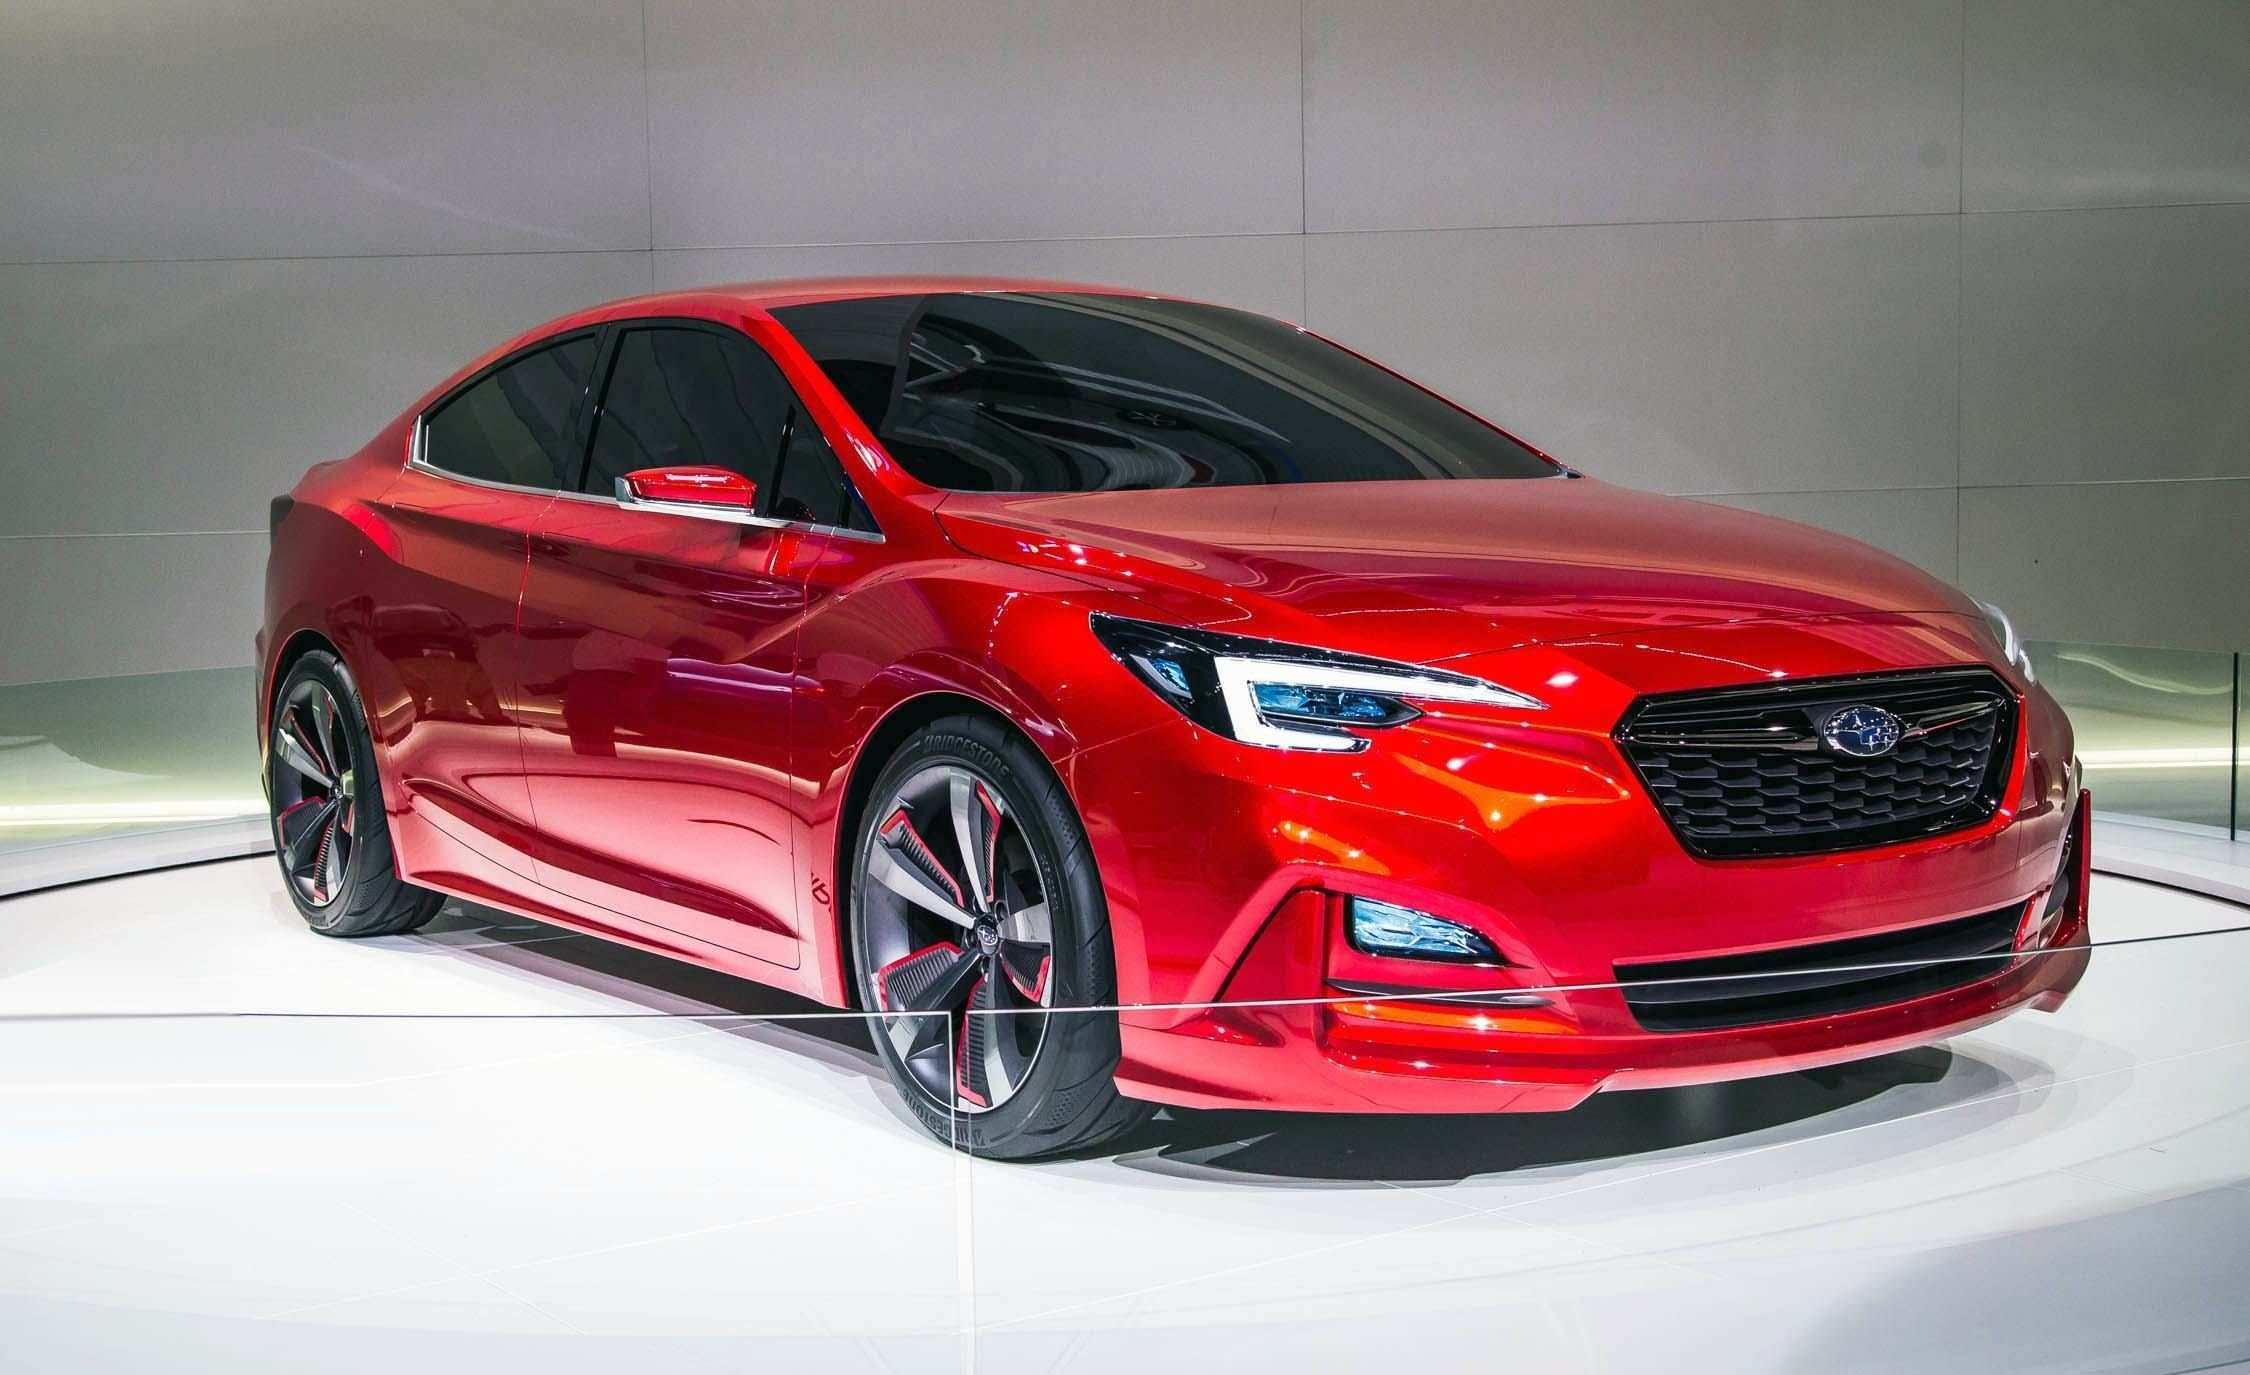 67 Concept of 2019 Subaru Cars Rumors for 2019 Subaru Cars